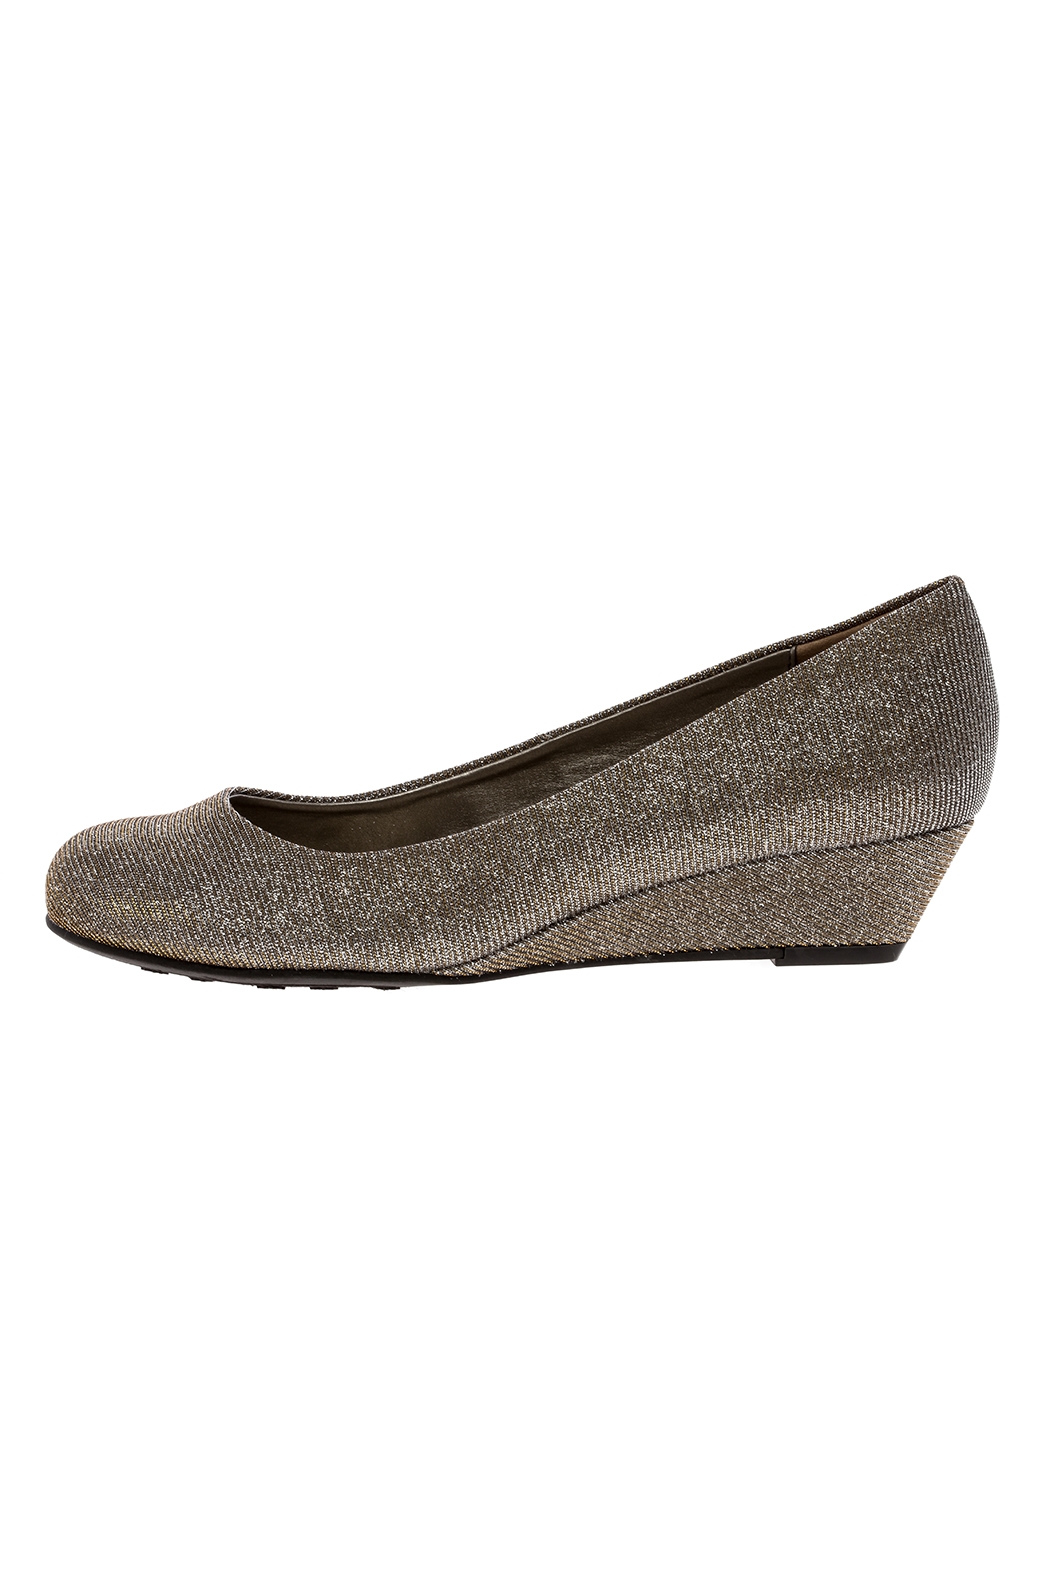 CL by Chinese Laundry Glitter Pump Wedge - Front Full Image